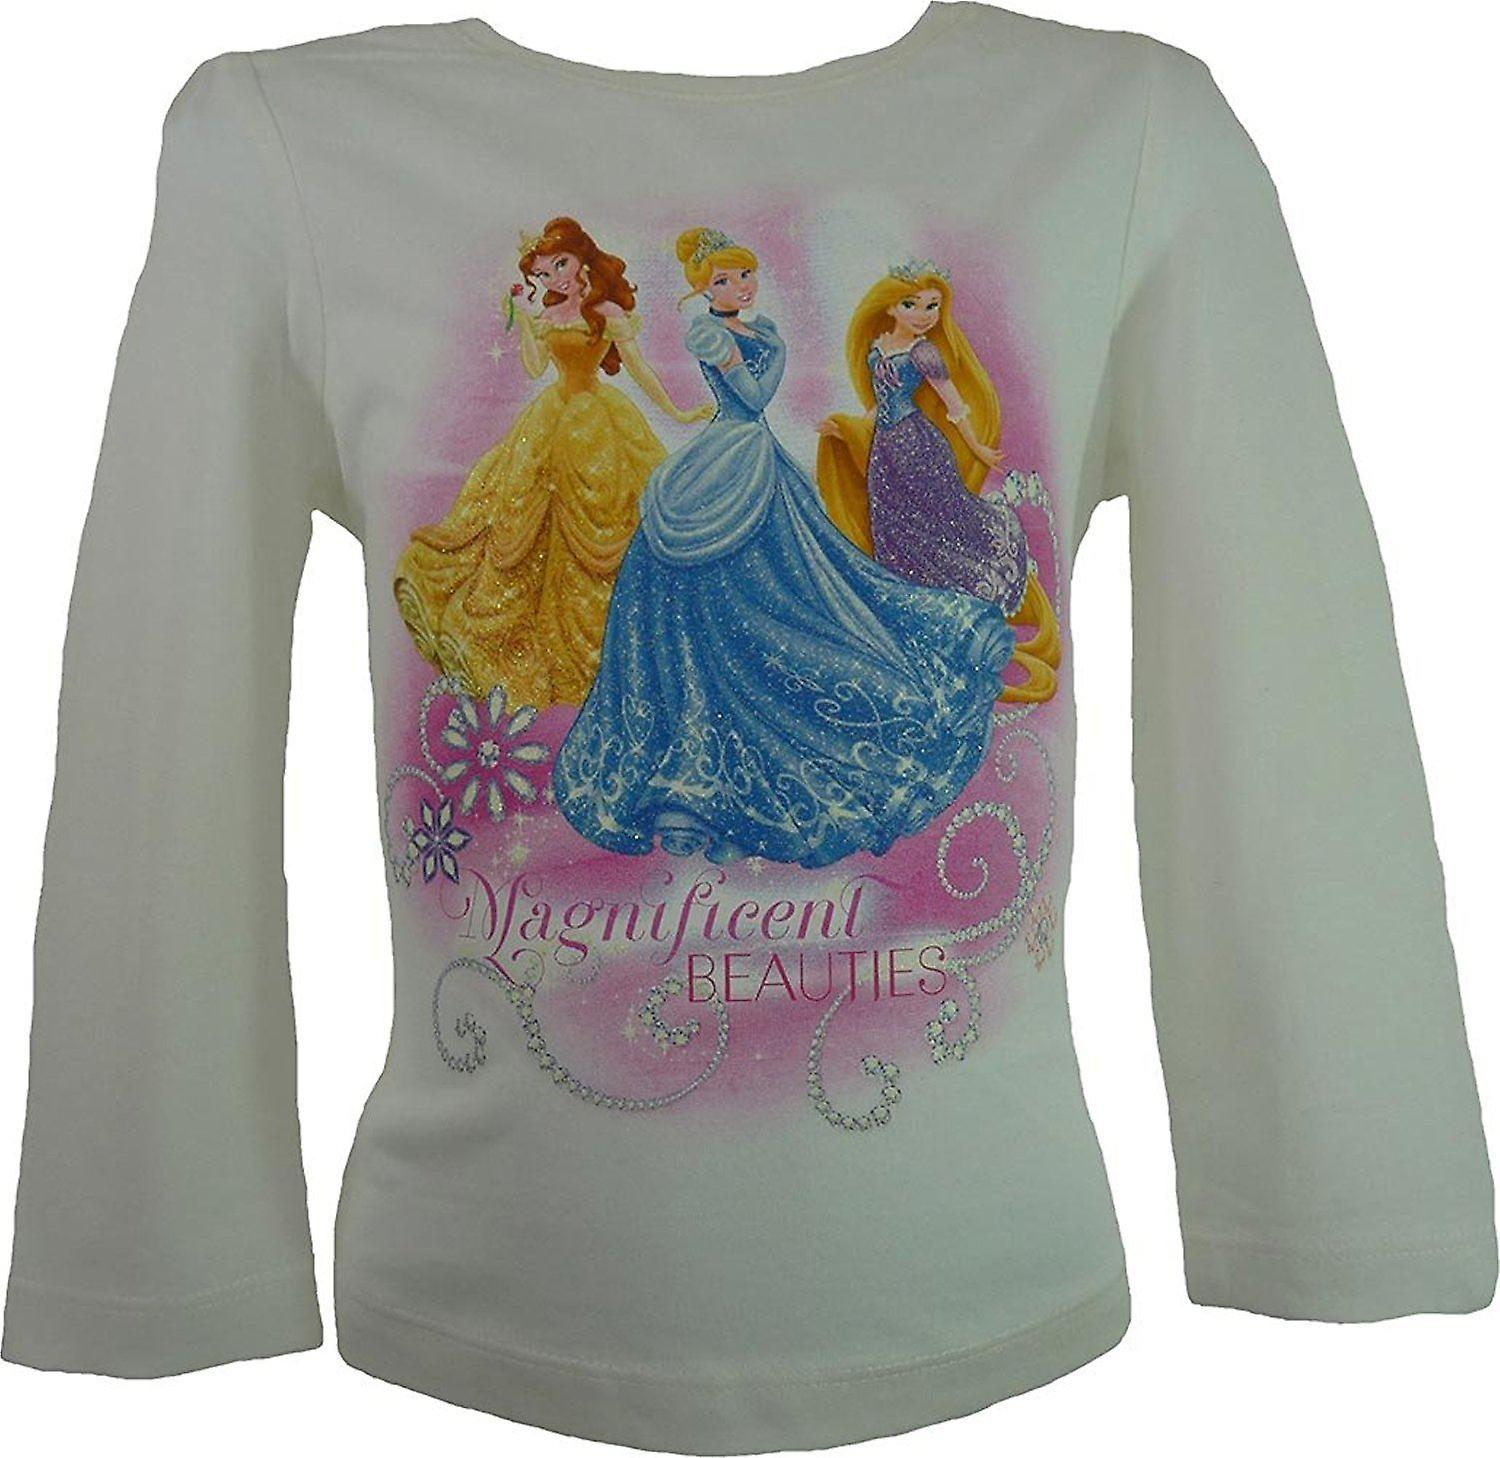 Girls Disney Princess Long Sleeve Top NH1119